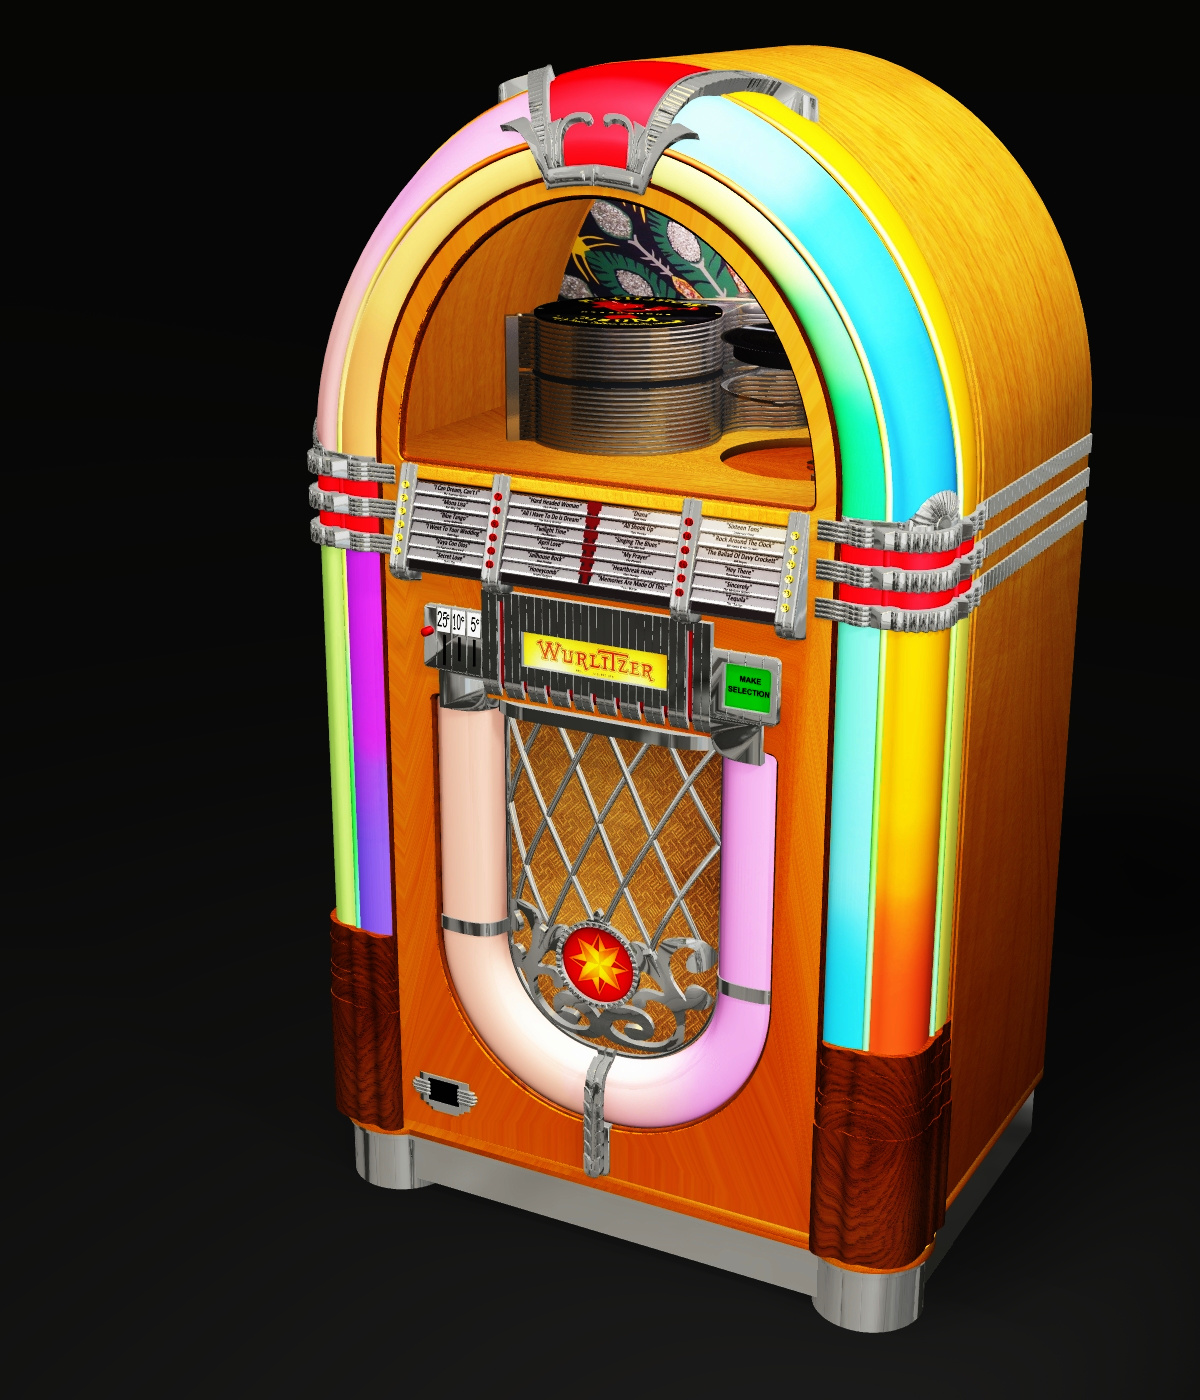 WURLITZER 1015 JUKEBOX OBJ & FBX (EXTENDED LICENSE) by 3DClassics